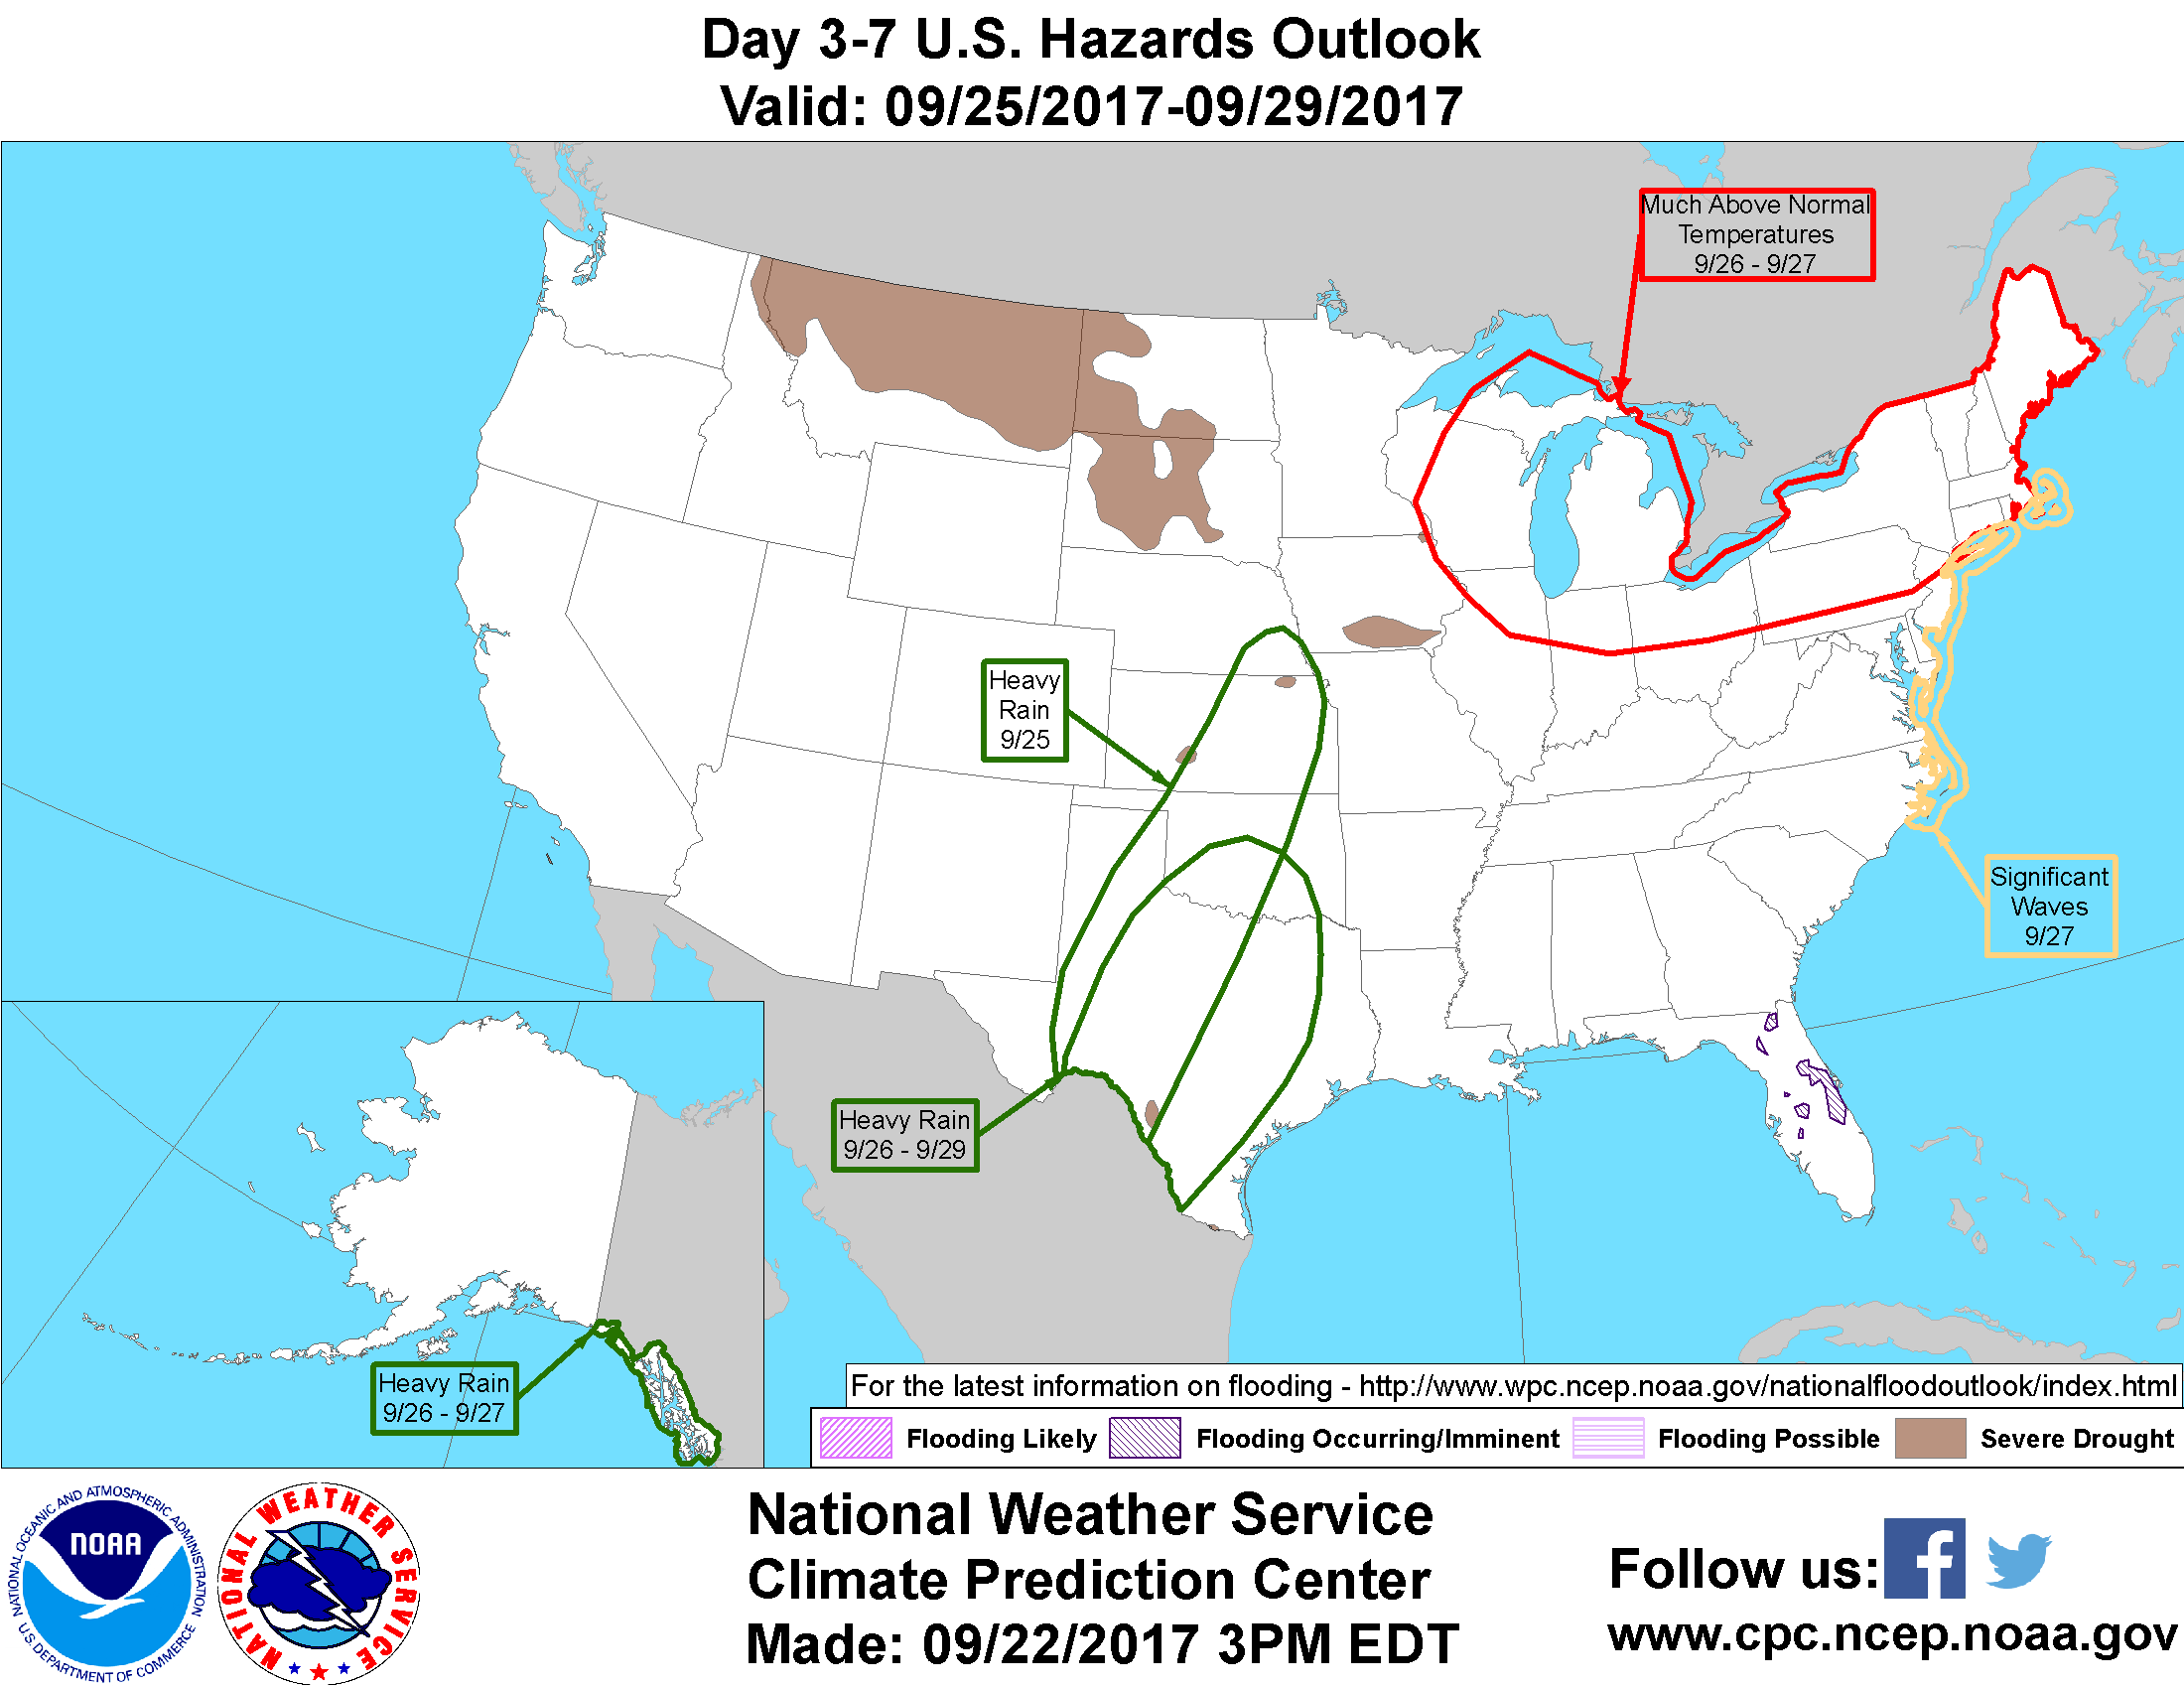 Flooding occurring or imminent across portions of the southeast 7 severe drought across the central plains the northern plains hawaii the northern